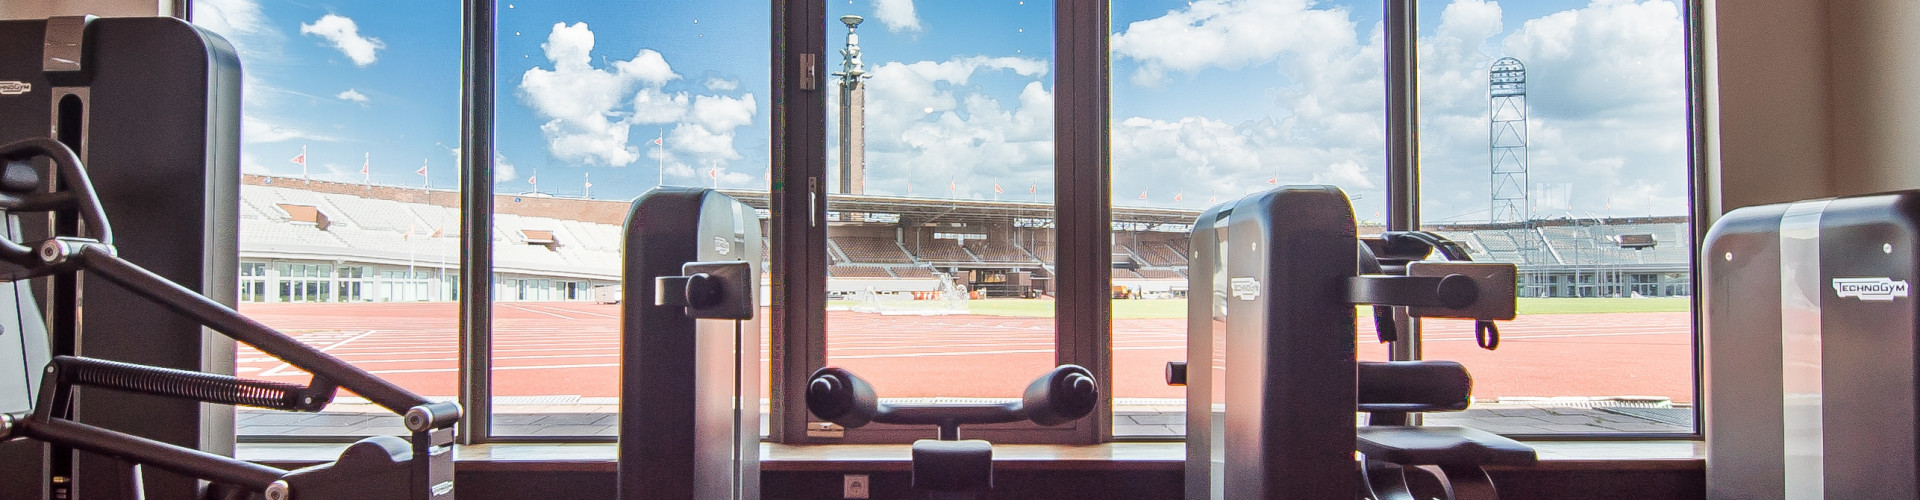 Olympic Gym Vacatures